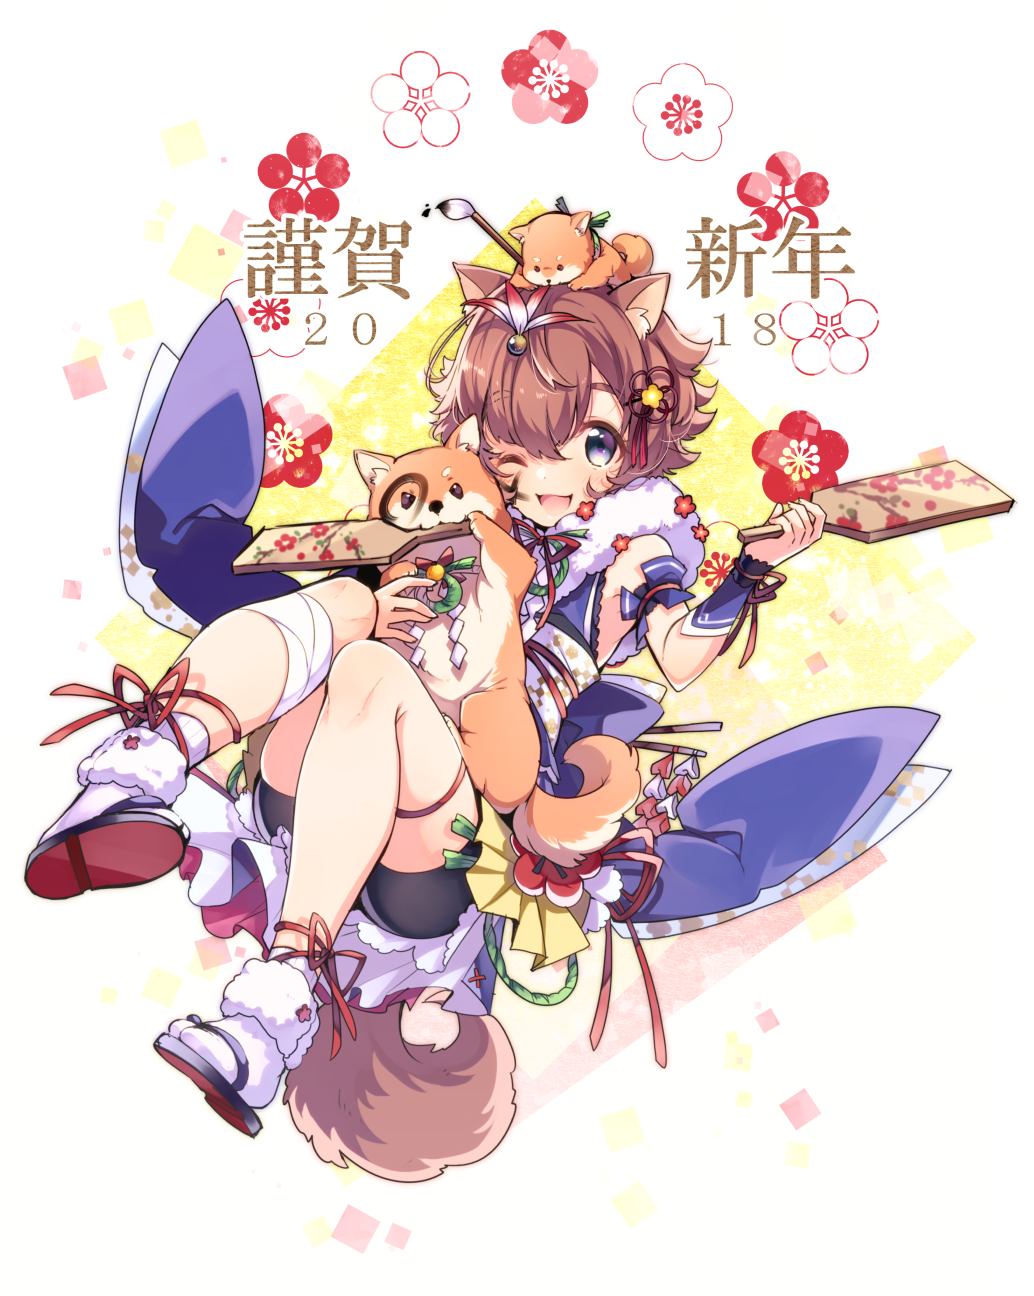 1girl 2018 :3 :d akeome animal animal_ears animal_on_head bandage bandaged_leg bangs bike_shorts blue_eyes blush bracer brown_hair commentary_request dog dog_ears dog_on_head dog_tail eyebrows_visible_through_hair facepaint feet hagoita hair_between_eyes hanetsuki happy_new_year highres holding japanese_clothes kimono new_year obi on_head one_eye_closed open_mouth original paddle revision sash short_hair short_kimono smile tail u35 year_of_the_dog